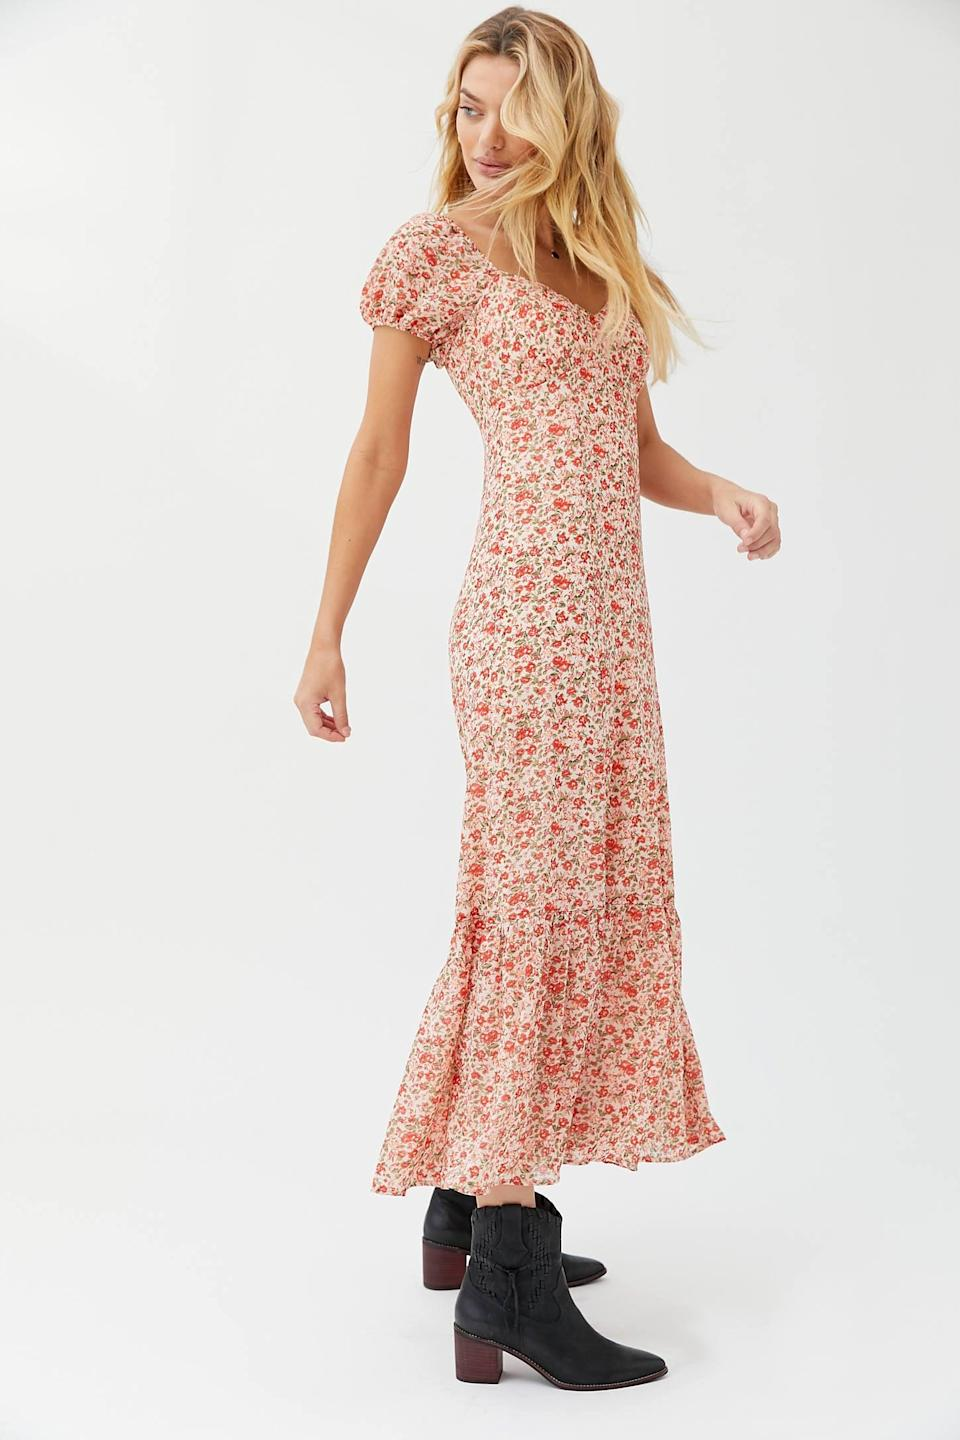 "<p>You could totally wear this <a href=""https://www.popsugar.com/buy/UO-Floral-Puff-Sleeve-Maxi-Dress-547302?p_name=UO%20Floral%20Puff%20Sleeve%20Maxi%20Dress&retailer=urbanoutfitters.com&pid=547302&price=89&evar1=fab%3Aus&evar9=47237816&evar98=https%3A%2F%2Fwww.popsugar.com%2Fphoto-gallery%2F47237816%2Fimage%2F47237894%2FUO-Floral-Puff-Sleeve-Maxi-Dress&list1=shopping%2Cdresses%2Cspring%20fashion&prop13=api&pdata=1"" class=""link rapid-noclick-resp"" rel=""nofollow noopener"" target=""_blank"" data-ylk=""slk:UO Floral Puff Sleeve Maxi Dress"">UO Floral Puff Sleeve Maxi Dress</a> ($89) to a <a class=""link rapid-noclick-resp"" href=""https://www.popsugar.com/Wedding"" rel=""nofollow noopener"" target=""_blank"" data-ylk=""slk:wedding"">wedding</a>.</p>"